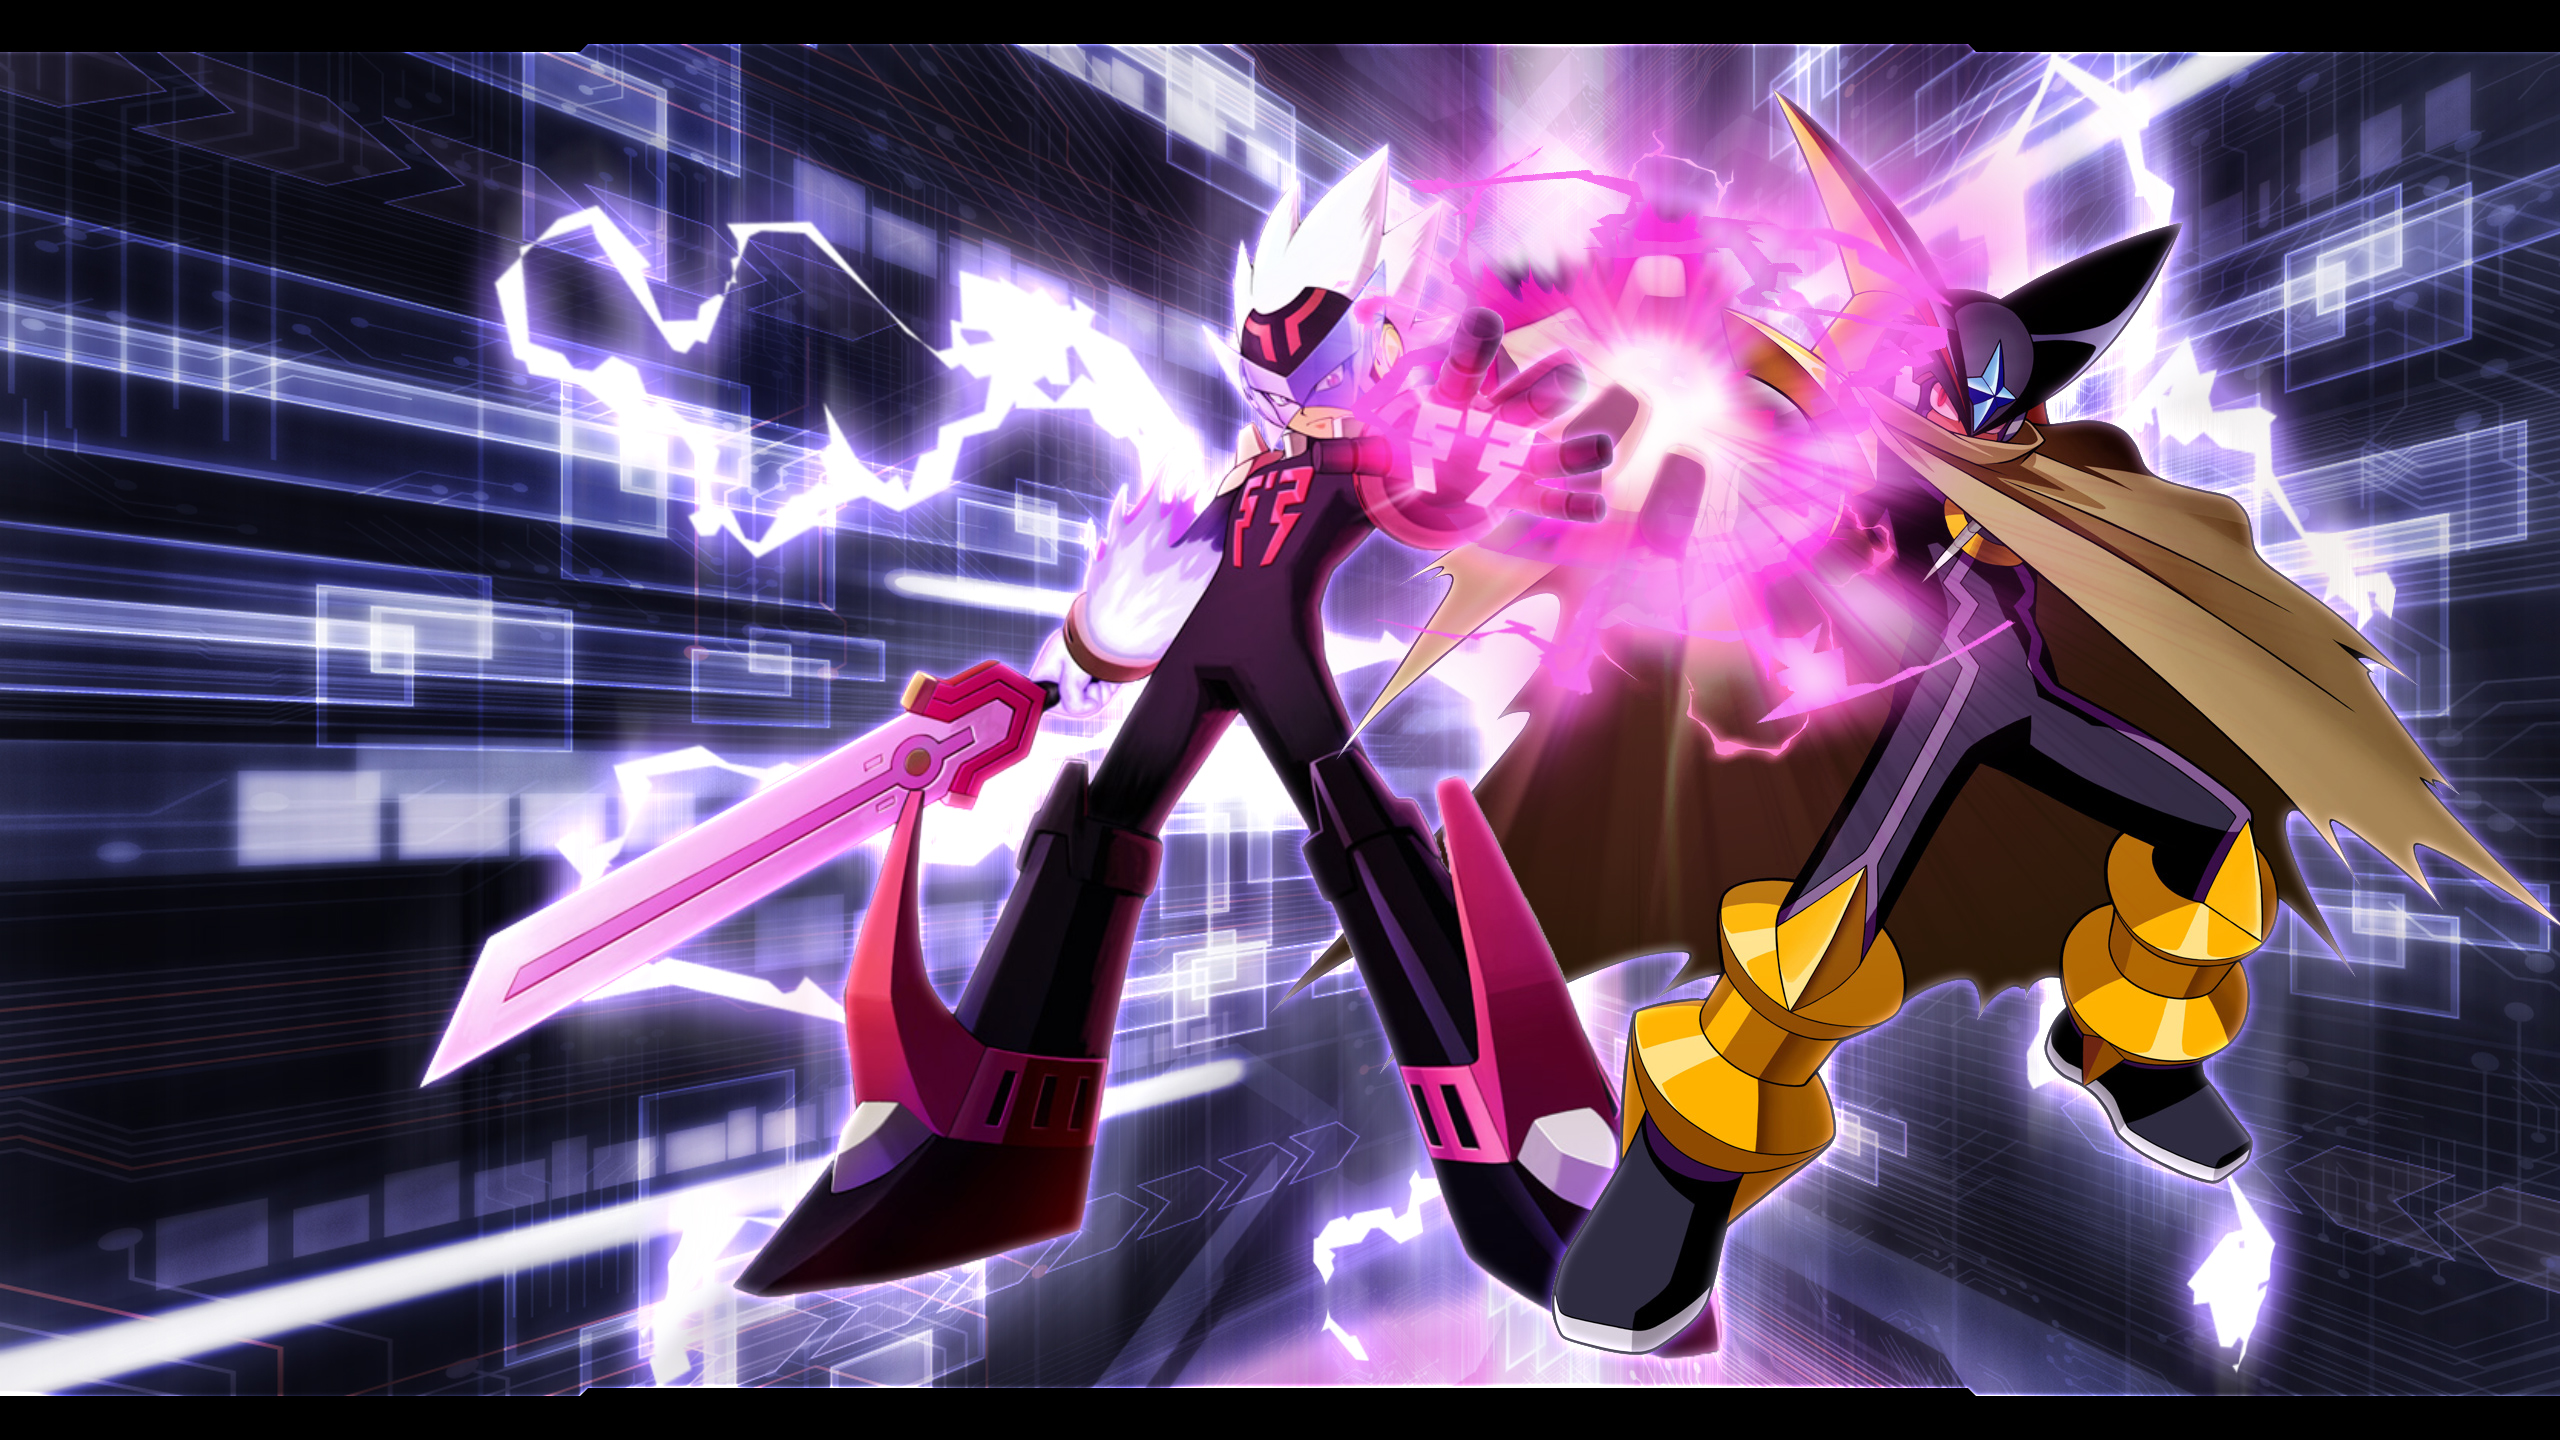 Wallpapers – The Rockman EXE Zone